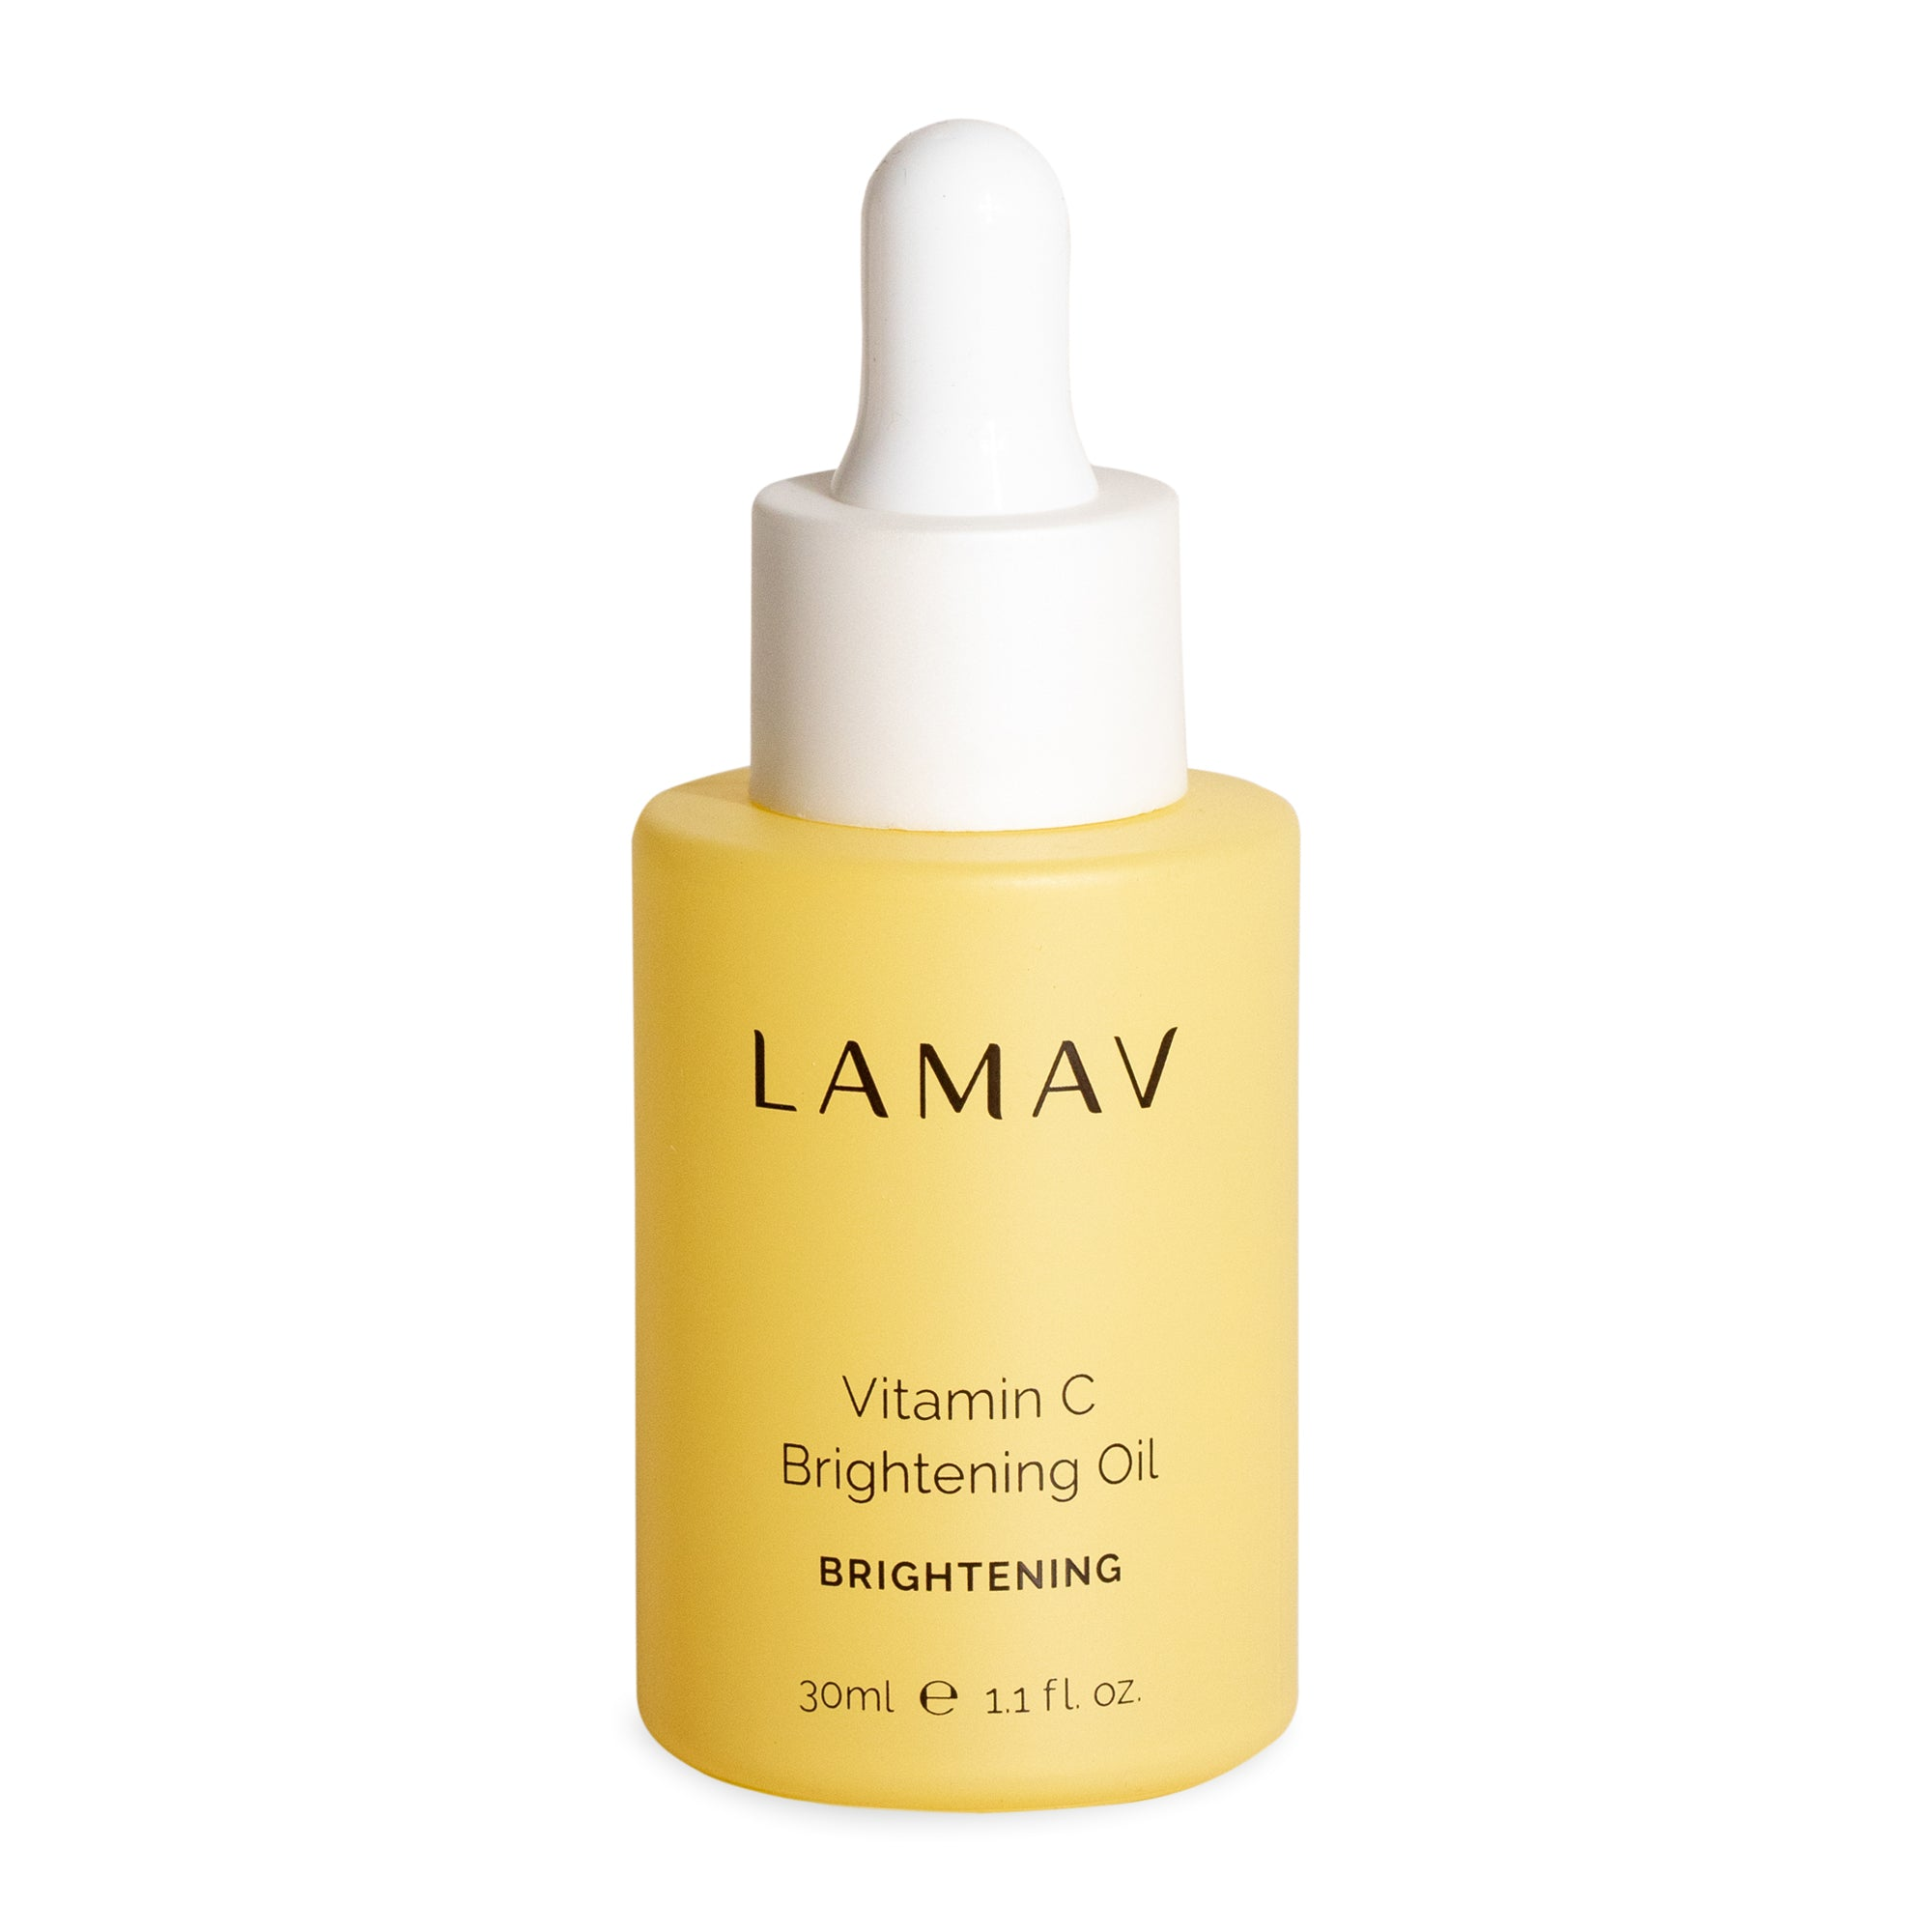 LaMav Vitamin C Brightening Oil. Phytonutrient rich superior brightening oil to promote evenly toned and radiant skin. Shop at Skinbase Beauty.